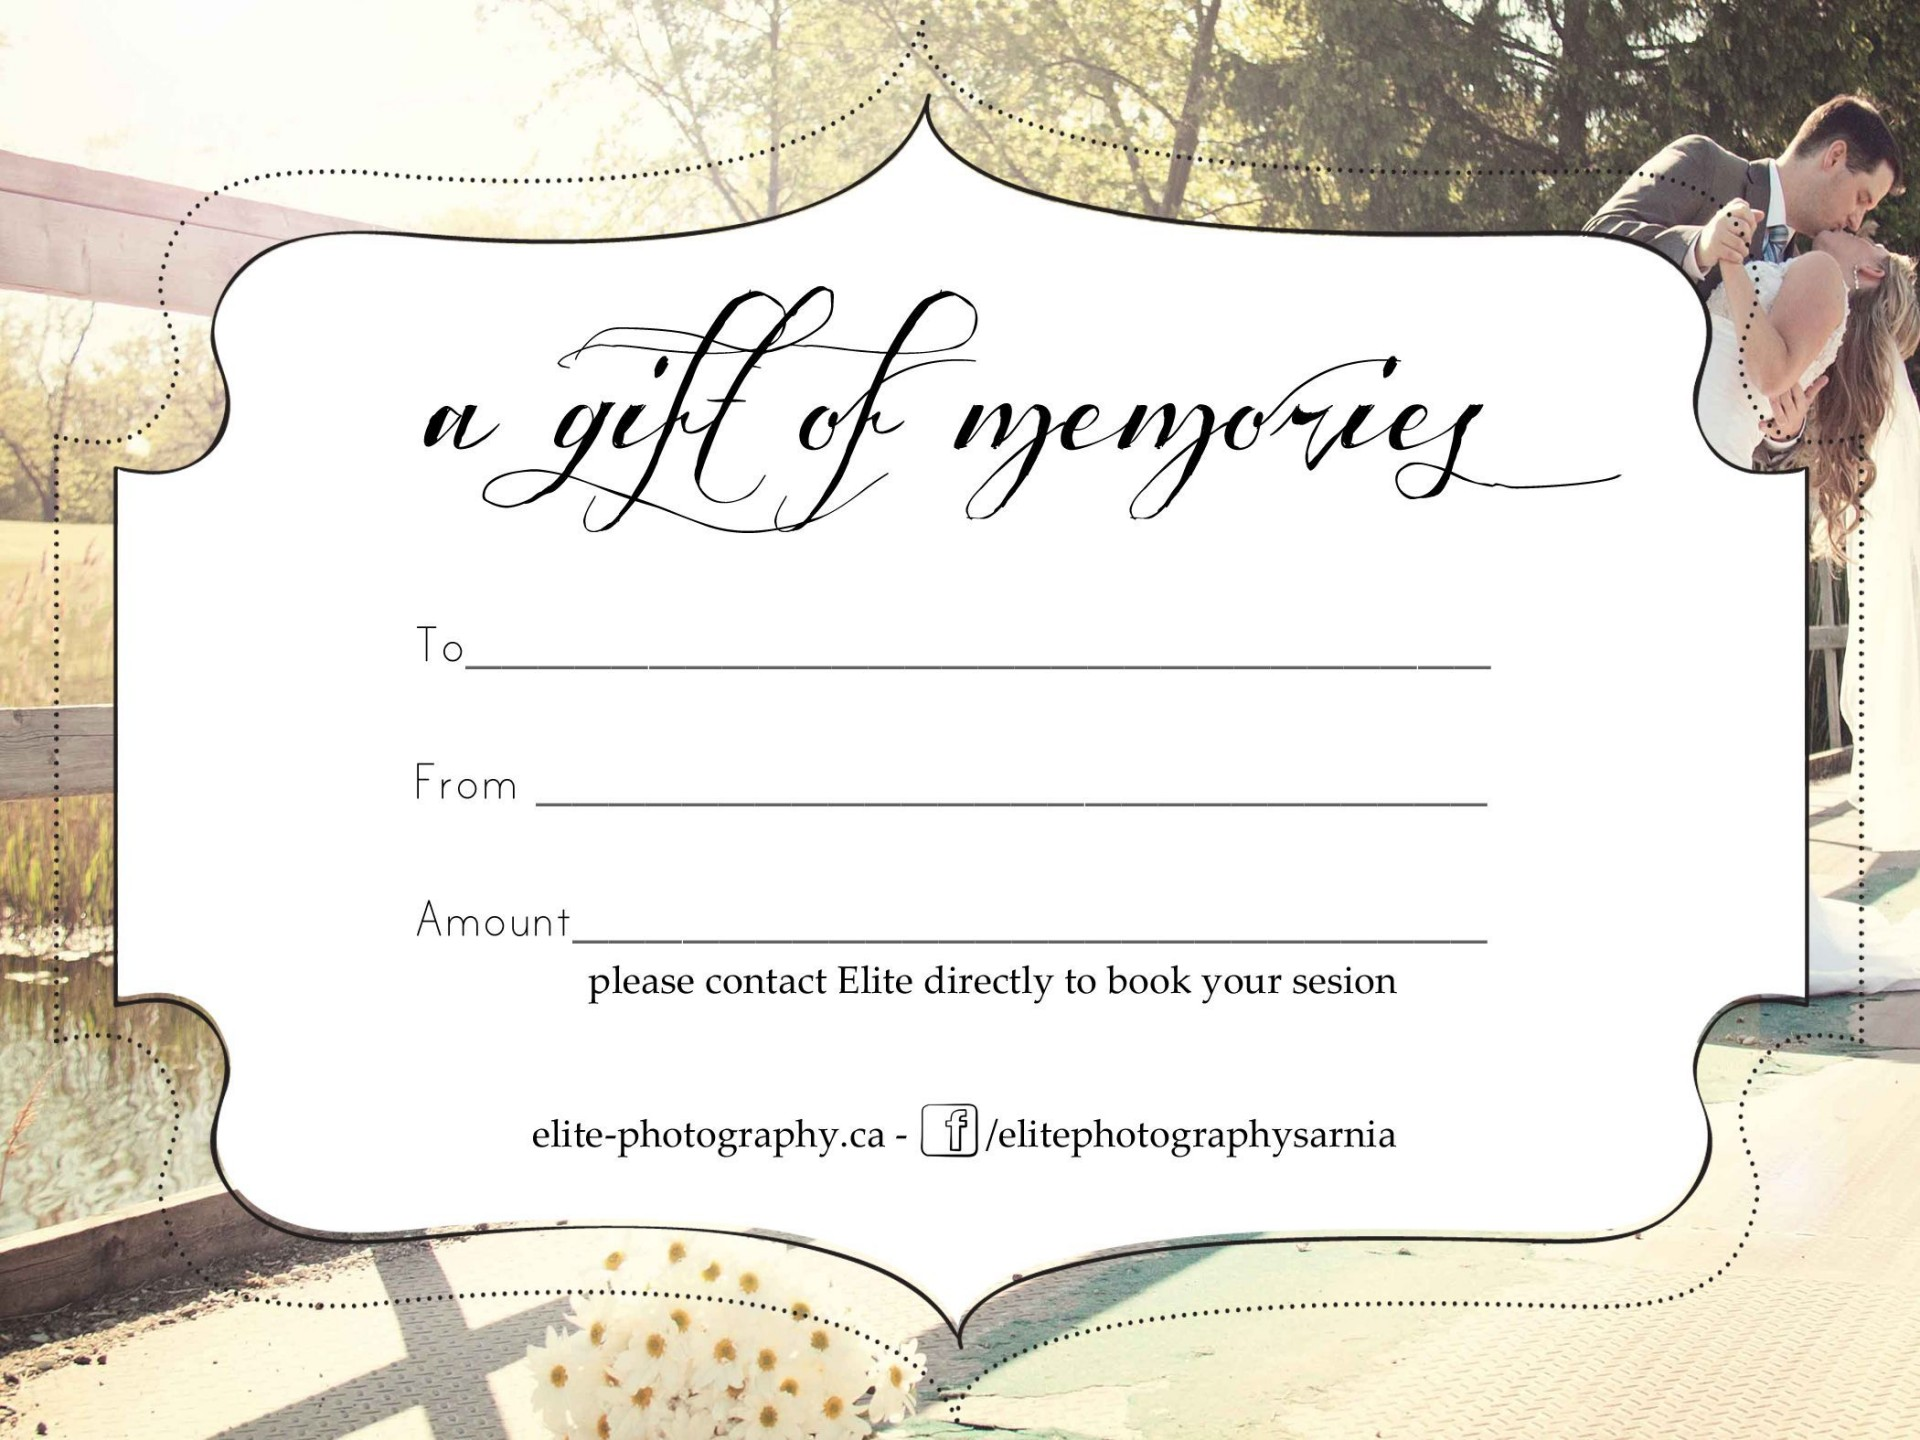 005 Unique Photography Session Gift Certificate Template Highest Quality  Photo Free1920